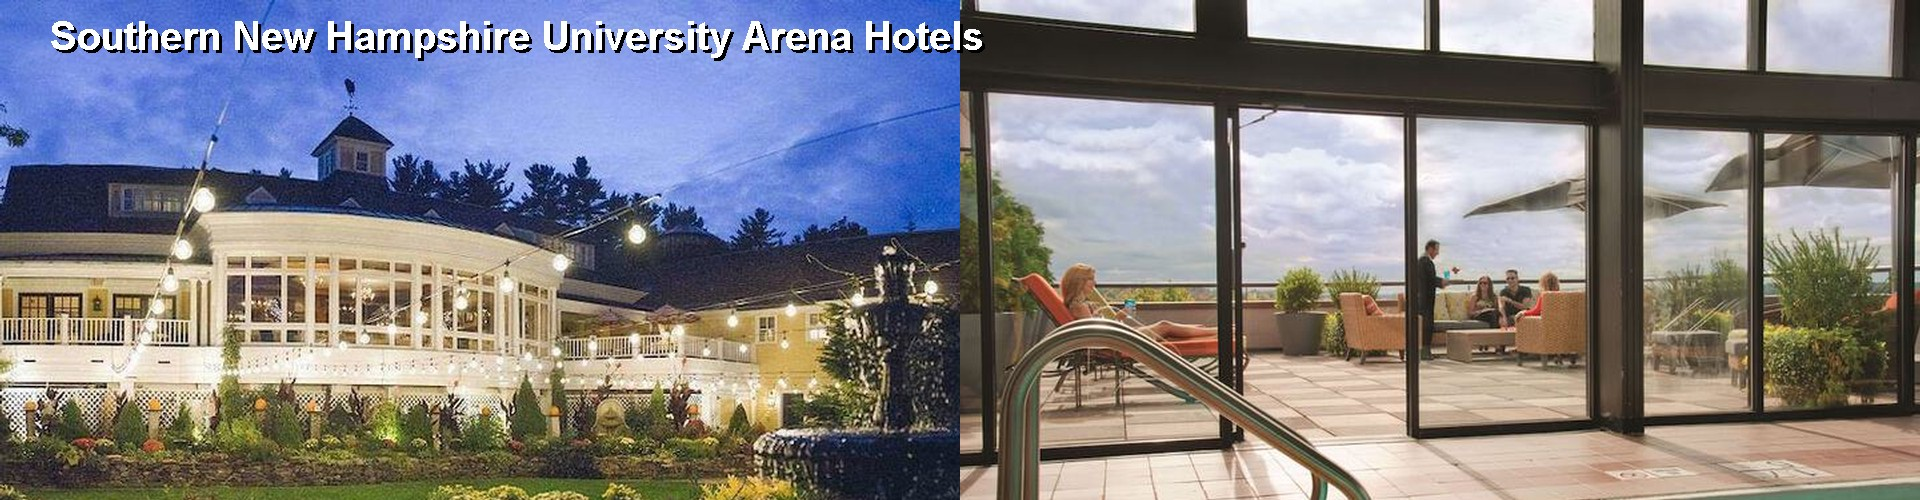 5 Best Hotels near Southern New Hampshire University Arena